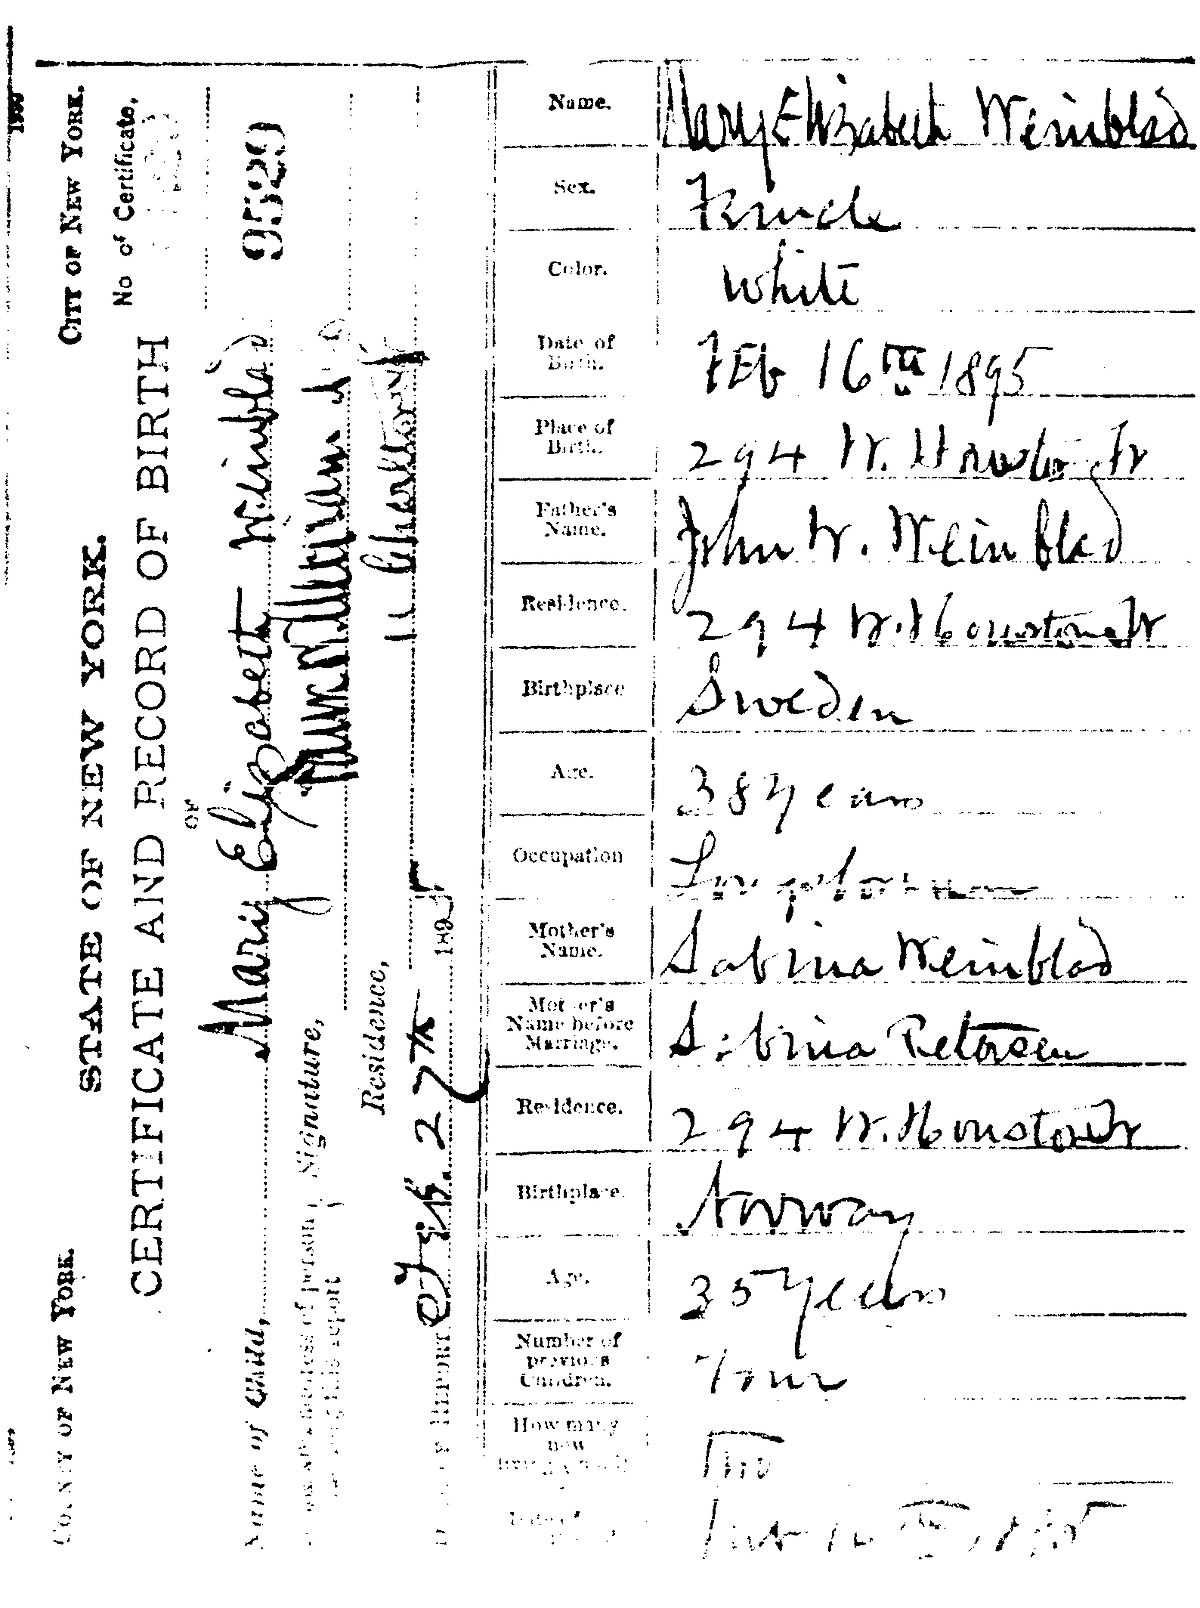 Birth certificate wikipedia 1betcityfo Images